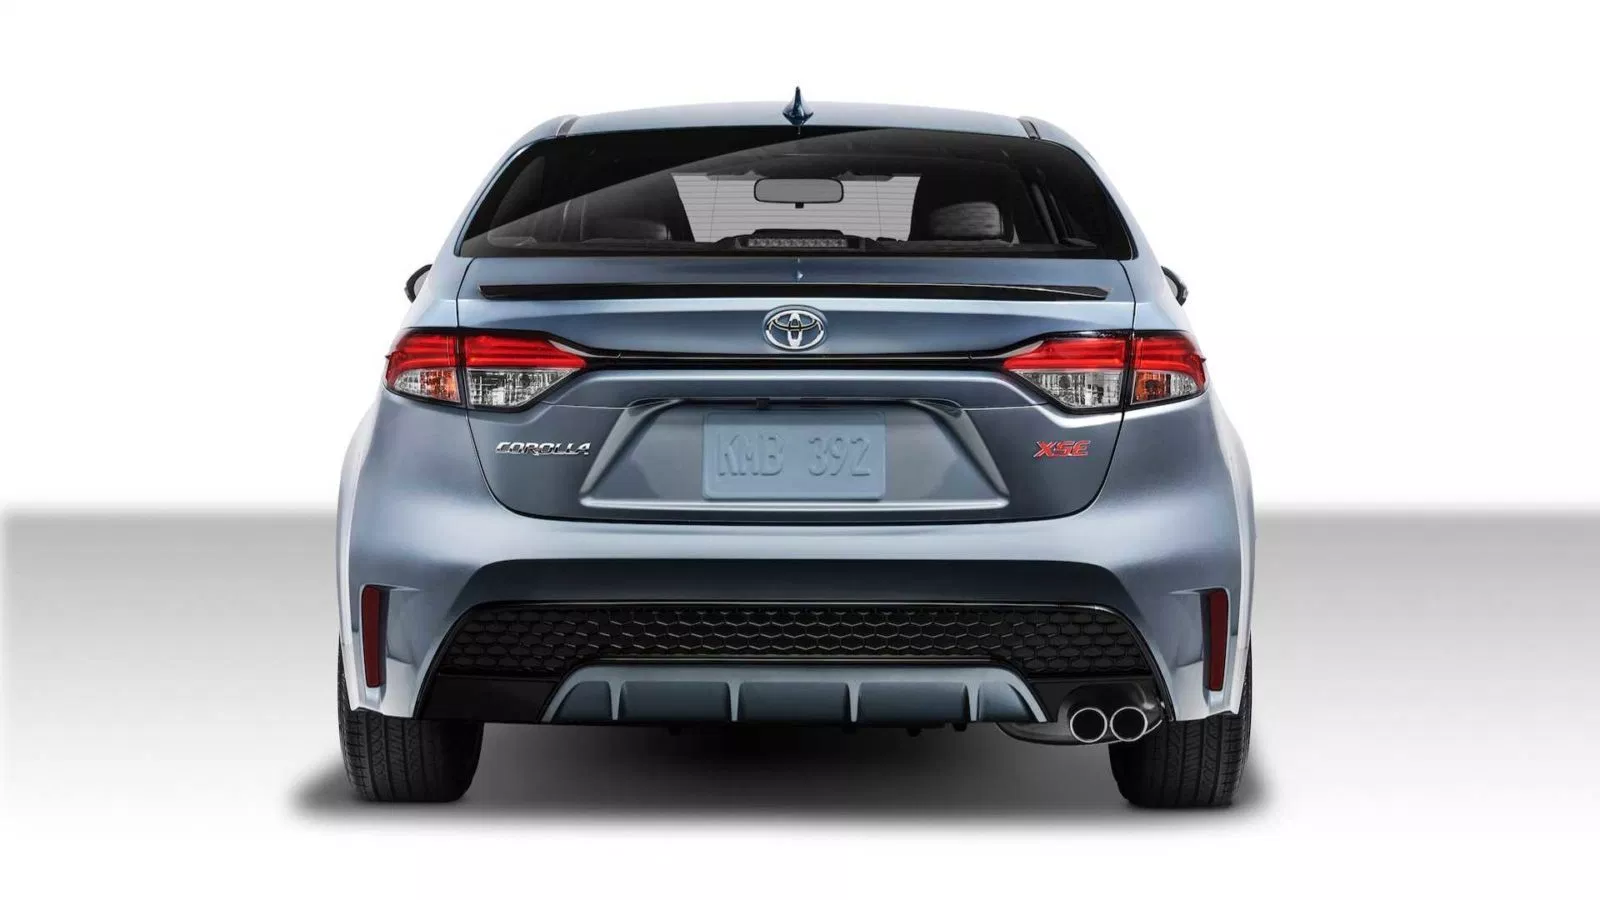 Toyota Corolla 2020 Exterior4 Latest Information About Toyota Cars Release Date Redesign And Rumors Our Coverage Also Includes Toyota Corolla Toyota Corolla